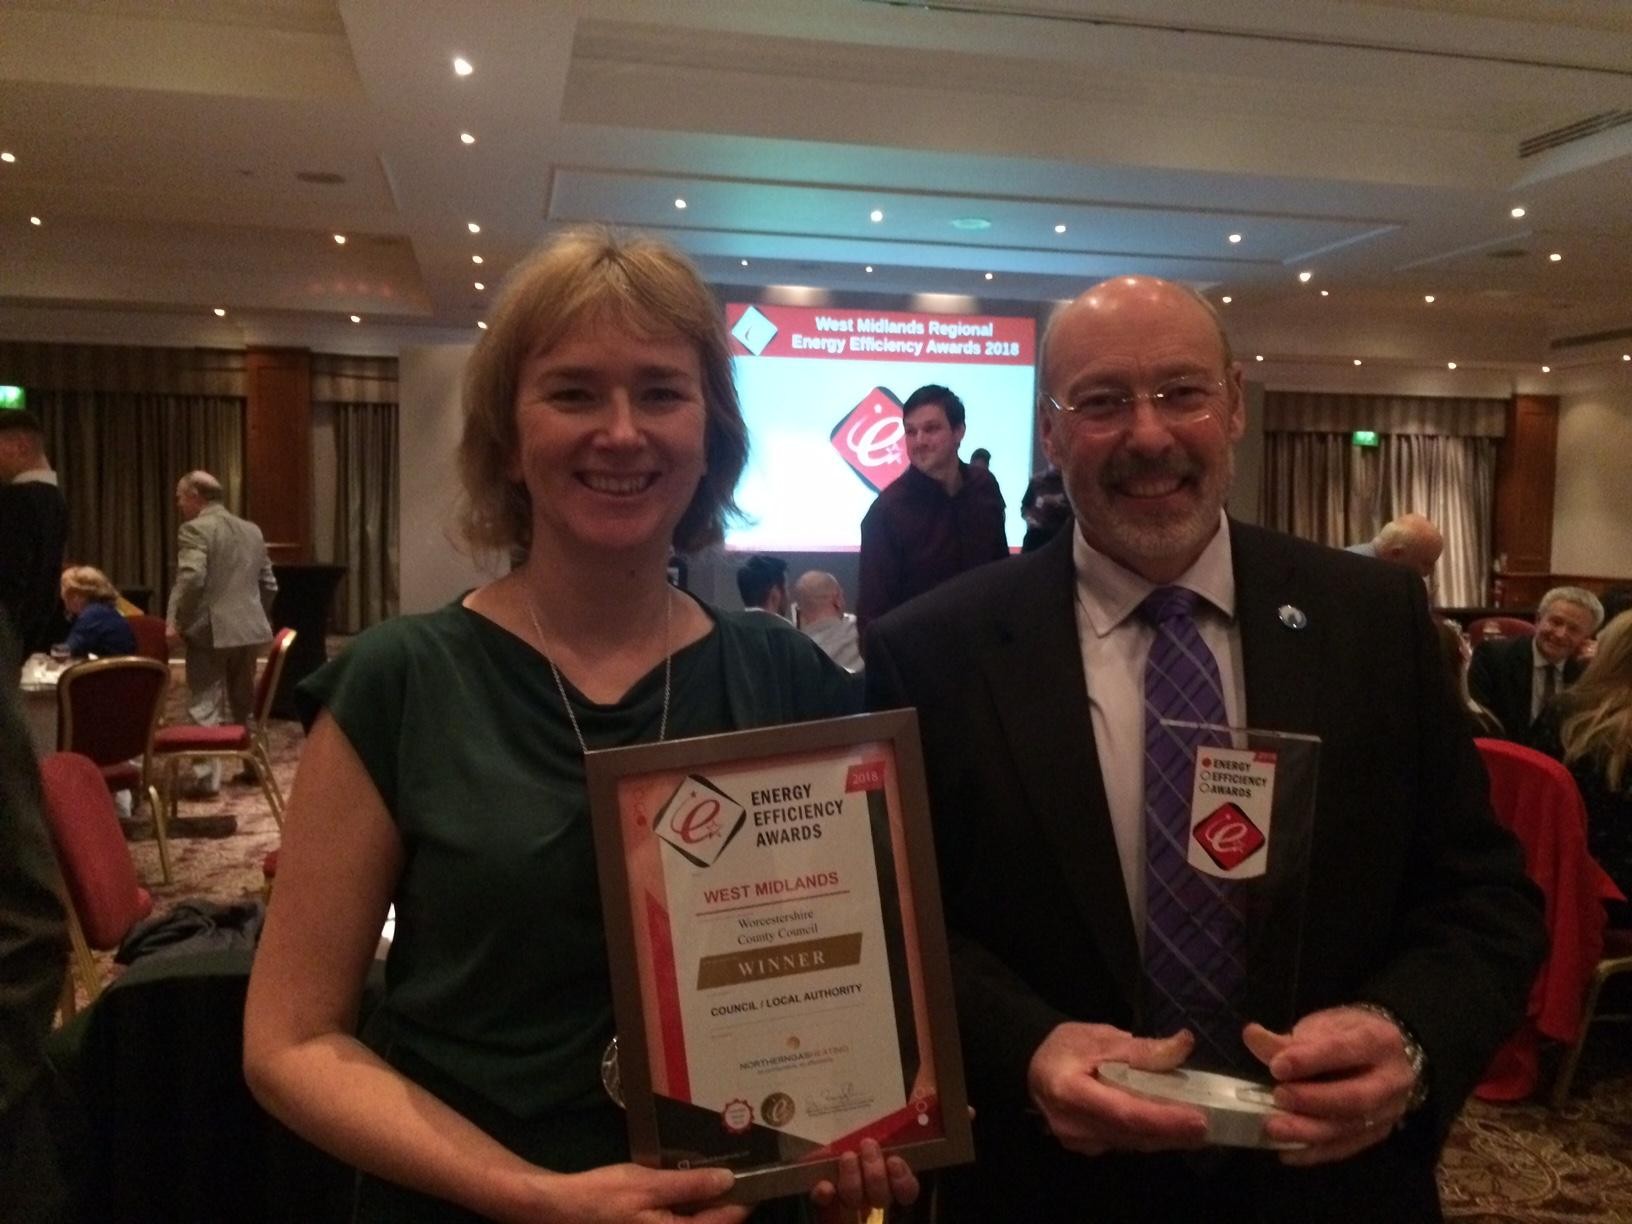 Councillor Tony Miller & Liz Alston, Principal Sustainability Manager at the Energy Efficiency Awards